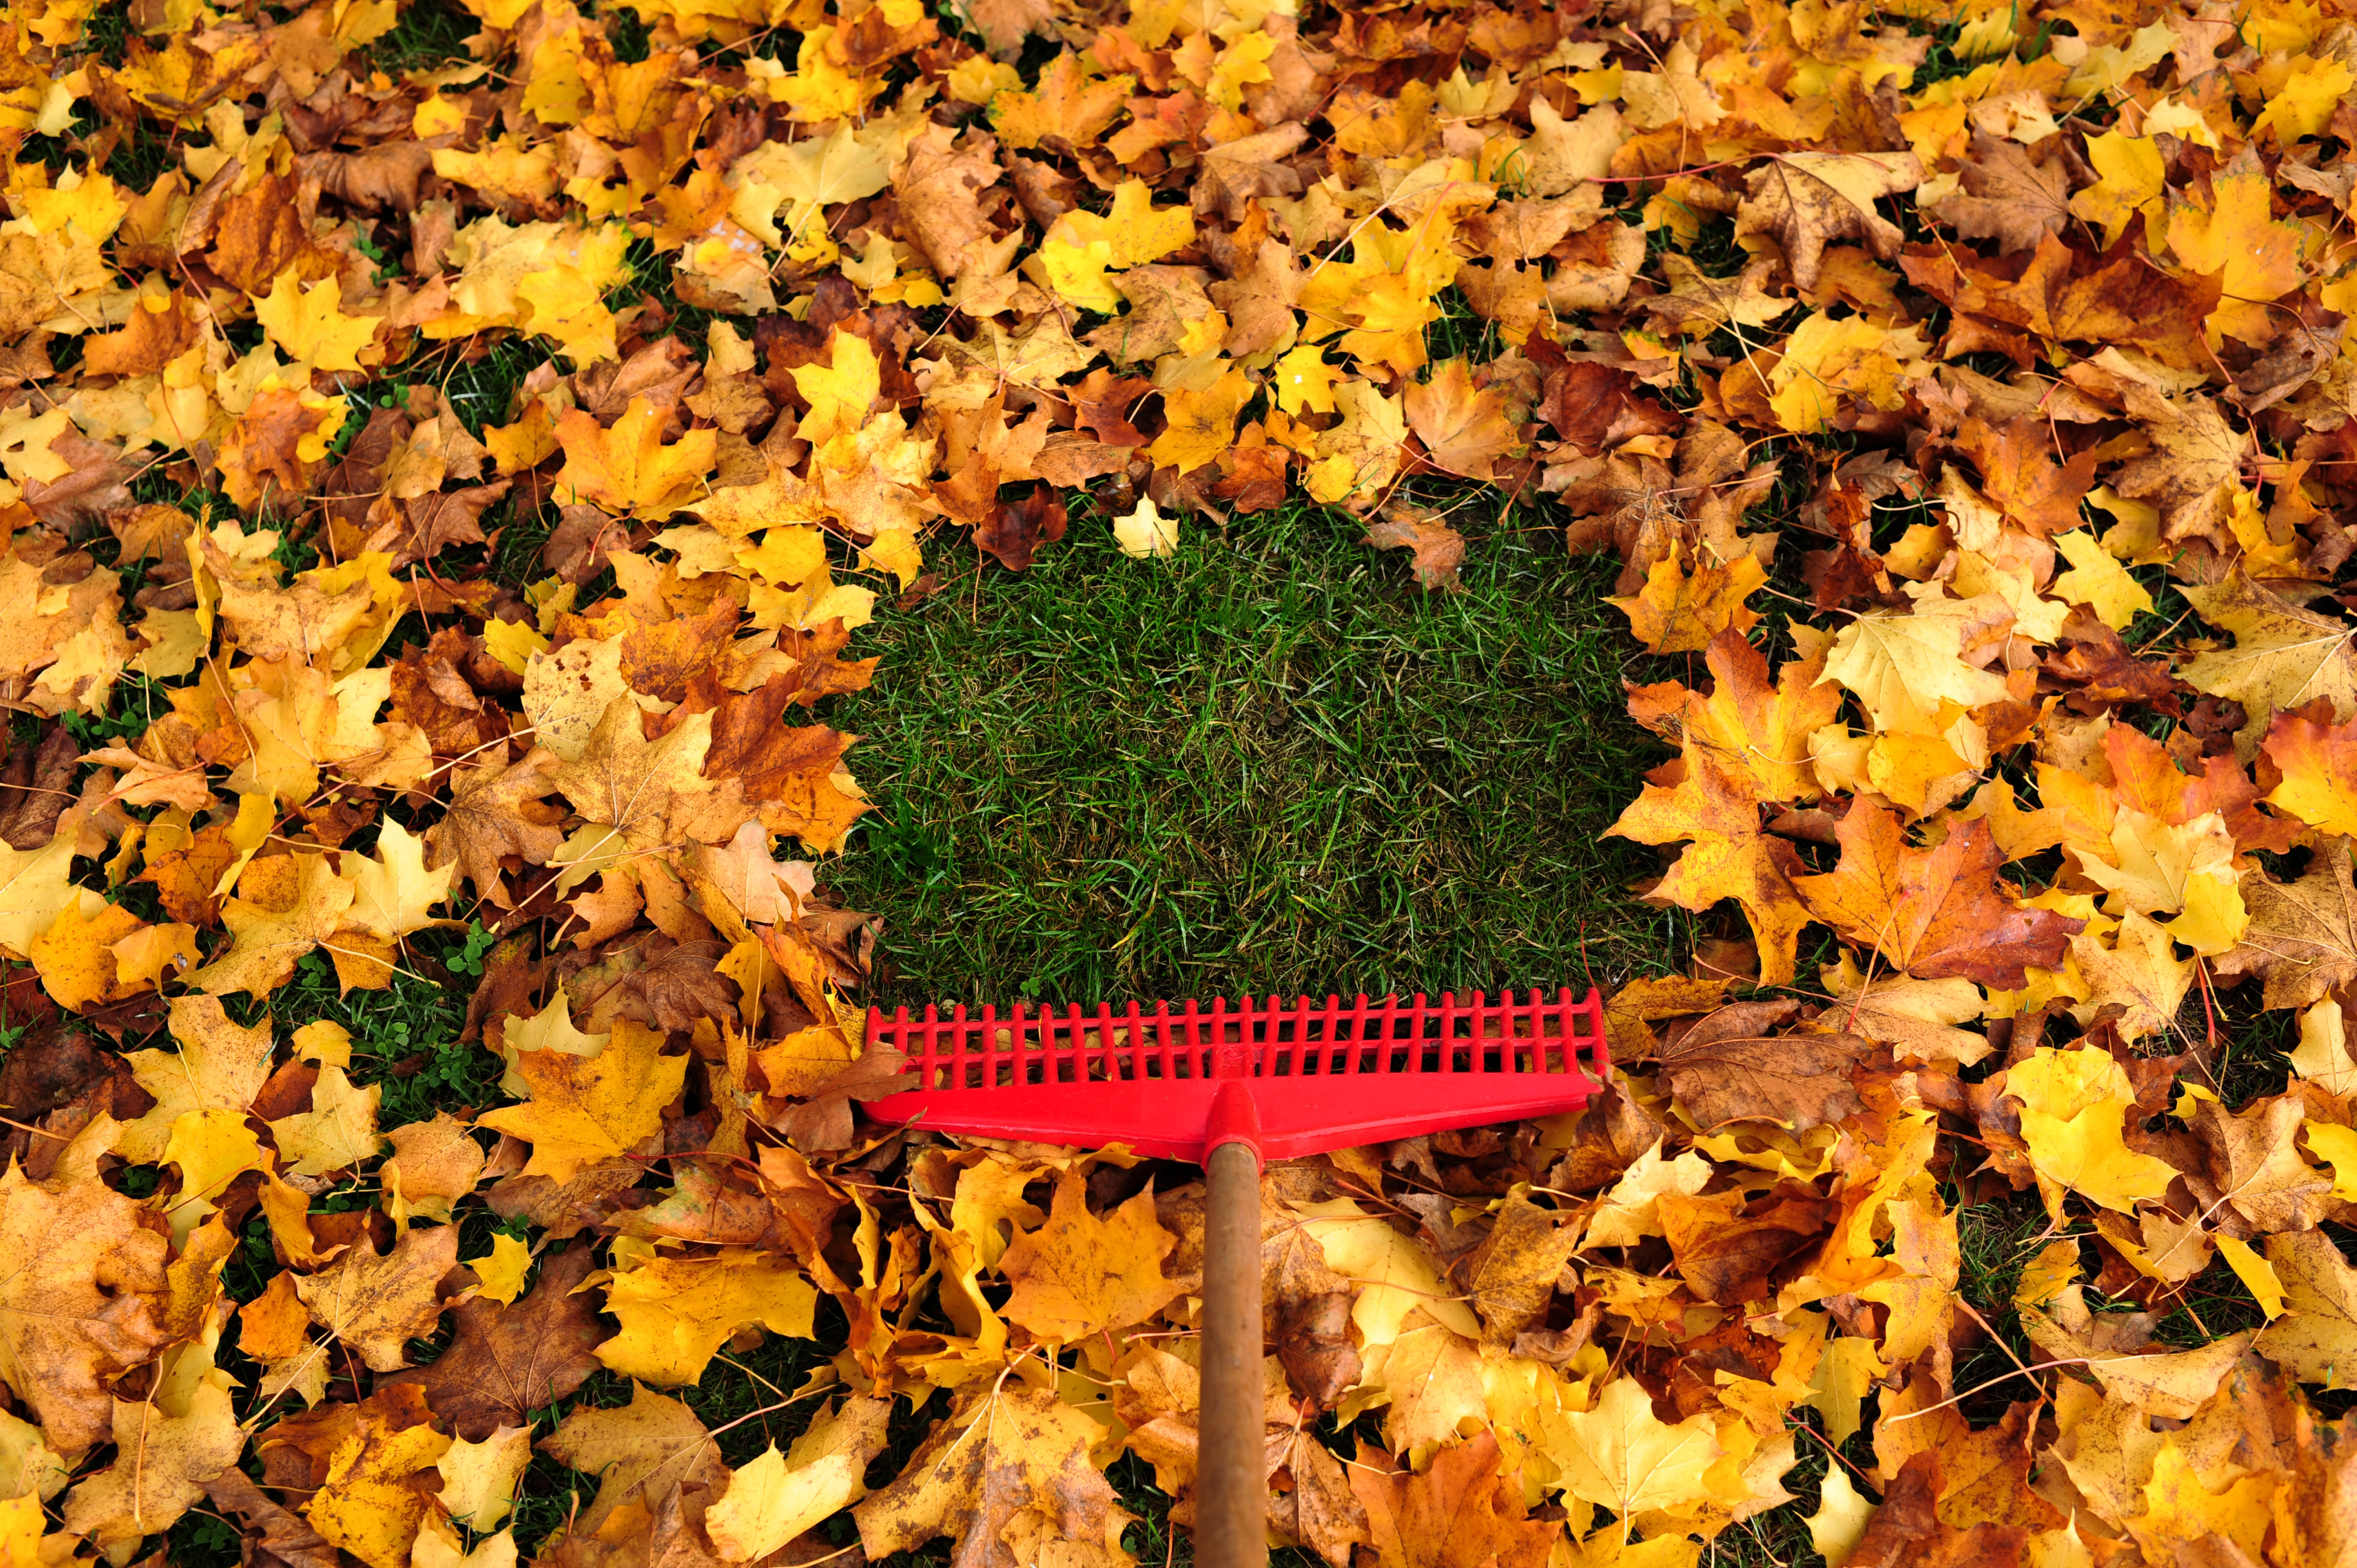 When it comes to fall lawn care, fallen leaves should be raked up as soon as possible.